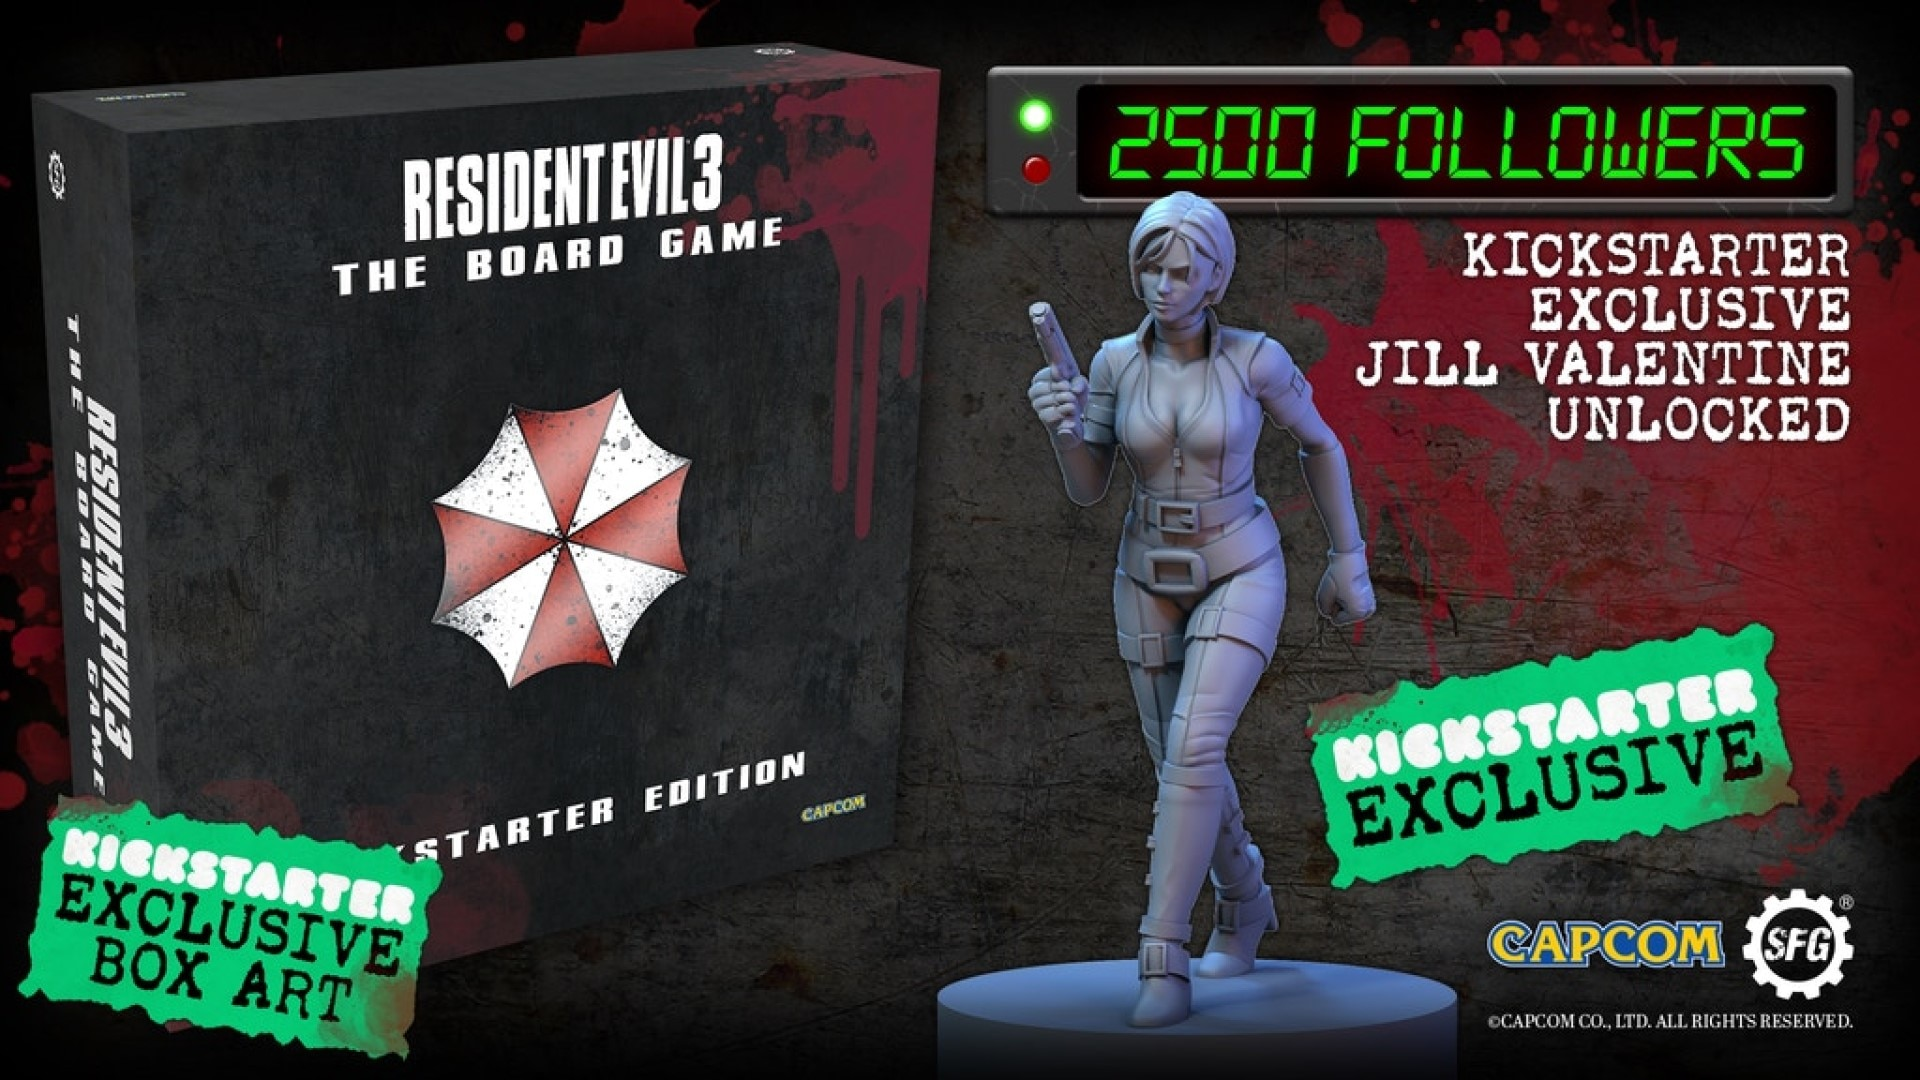 385a5bedfafd1fc58061b687649c8984 original - Resident Evil 3 Board Game Coming Soon To A Kickstarter Near You